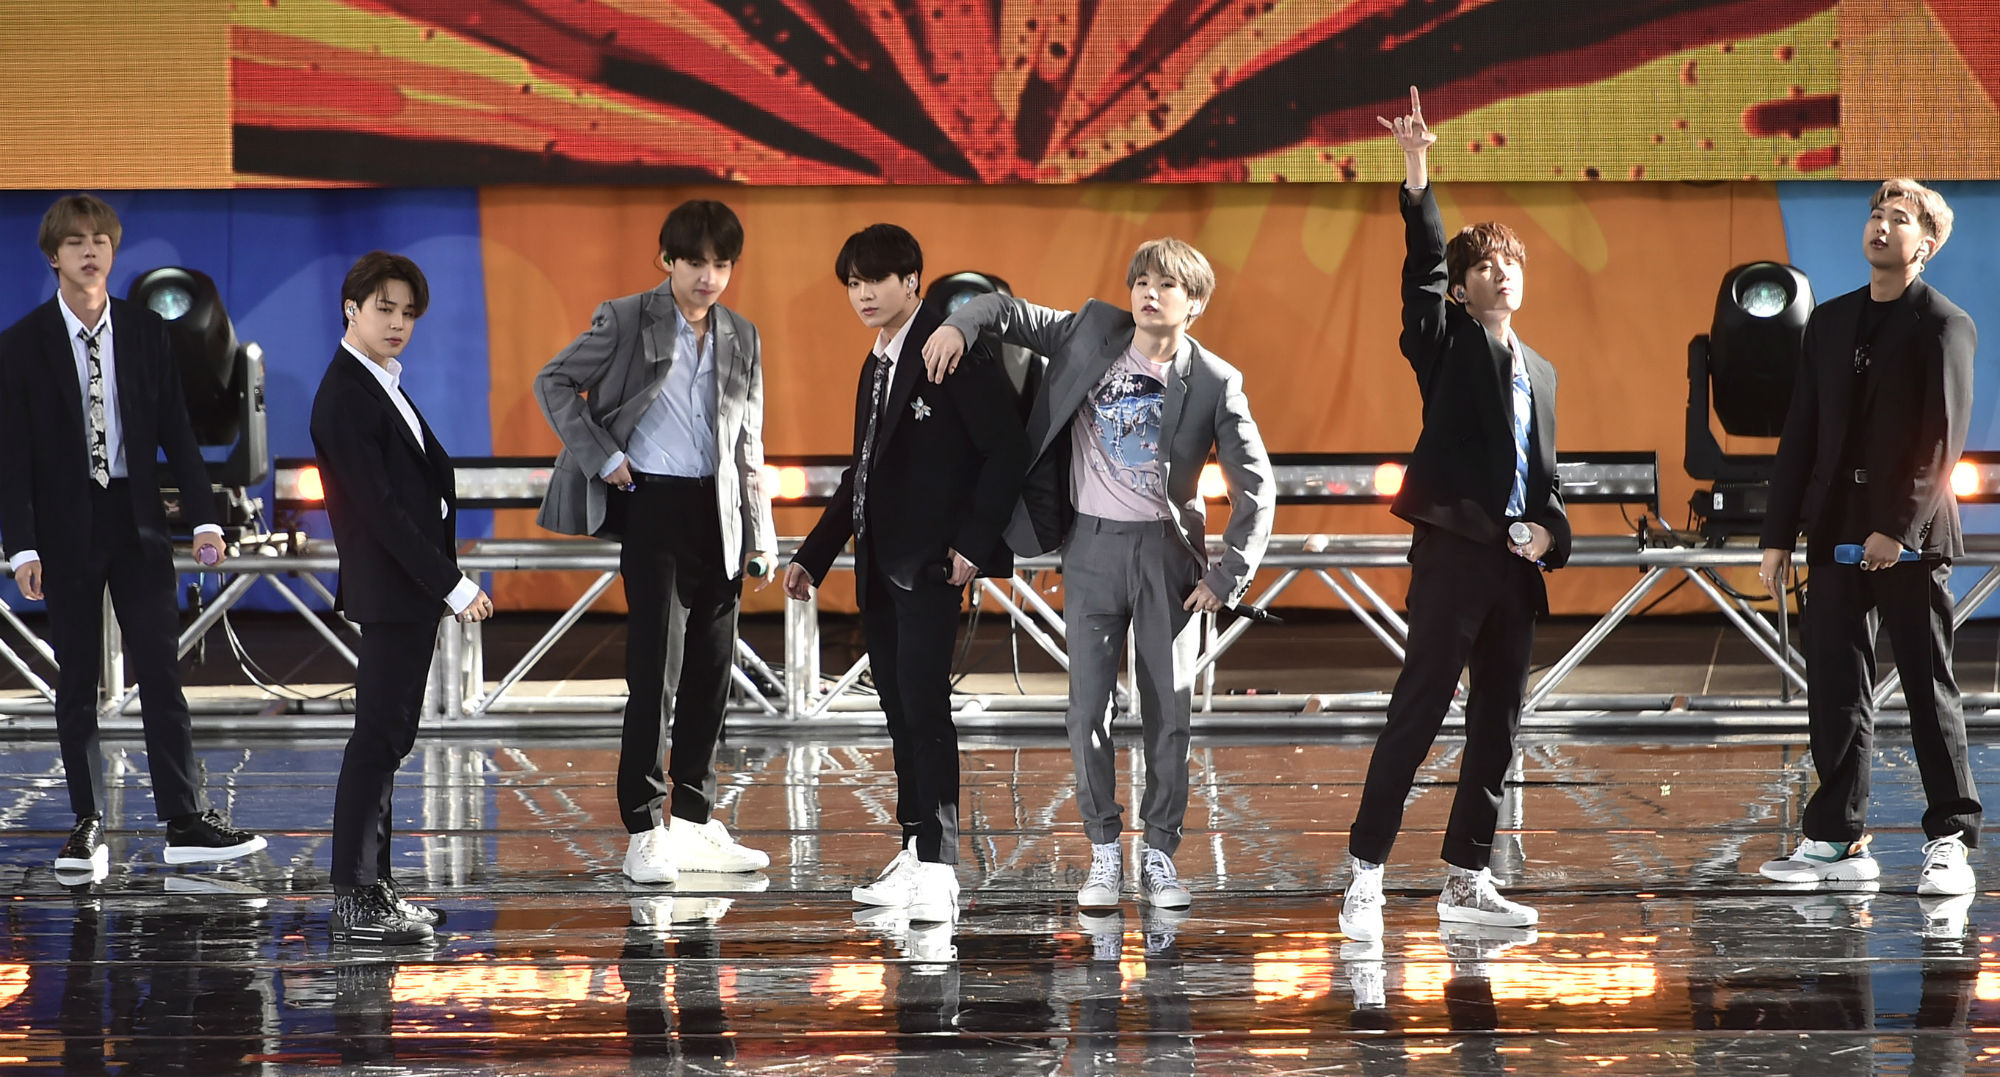 Bts New Mobile Game Bts World Will Be Released This Week